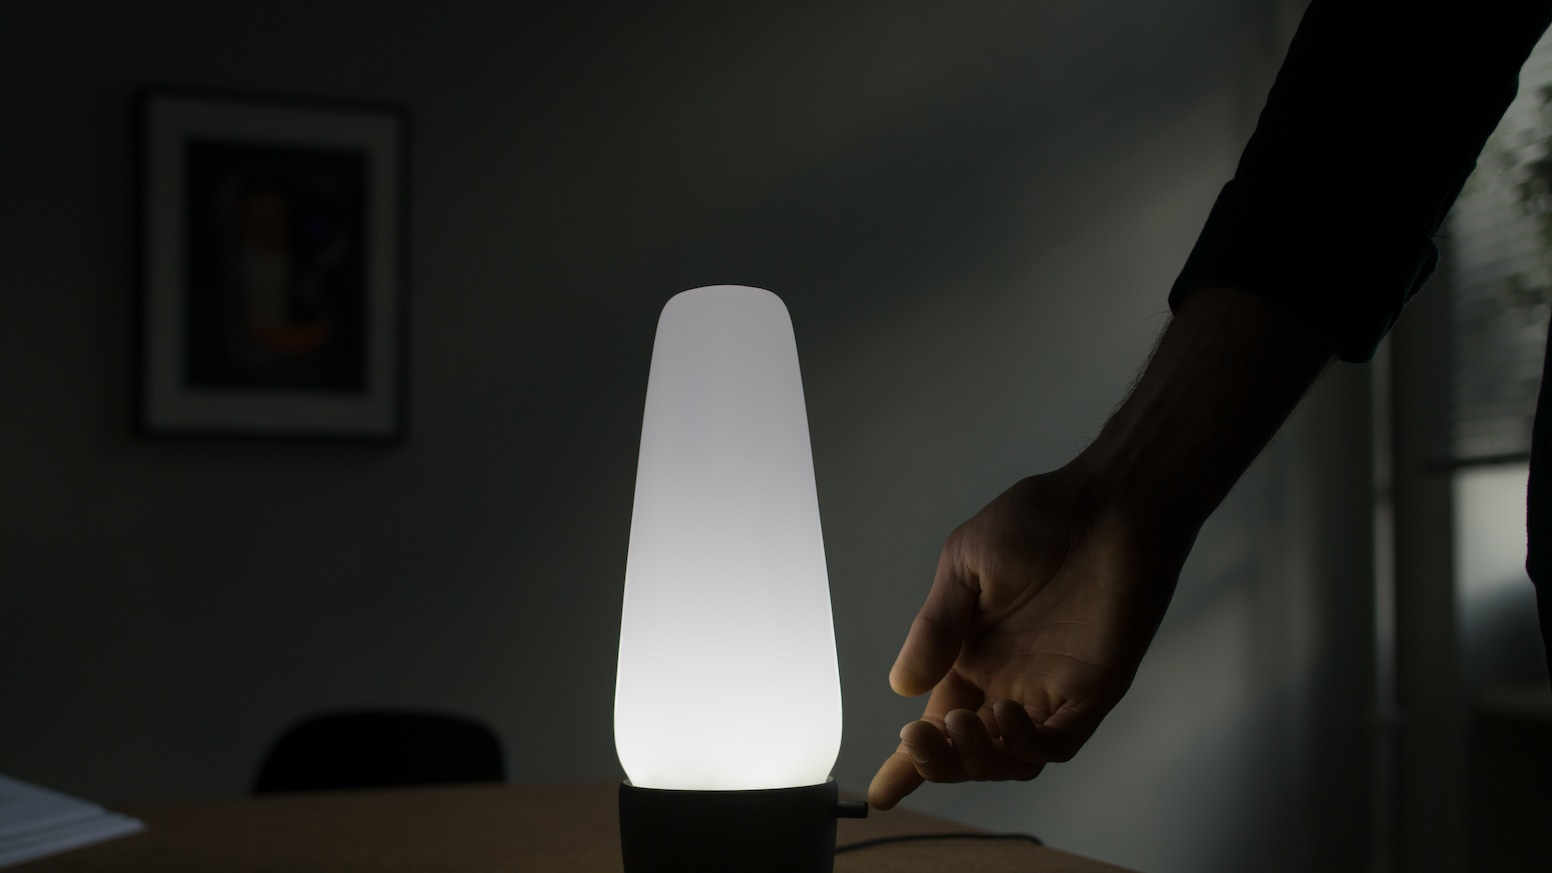 COVI is a beautifully designed lamp that includes a speech interface and open source smart home hub.